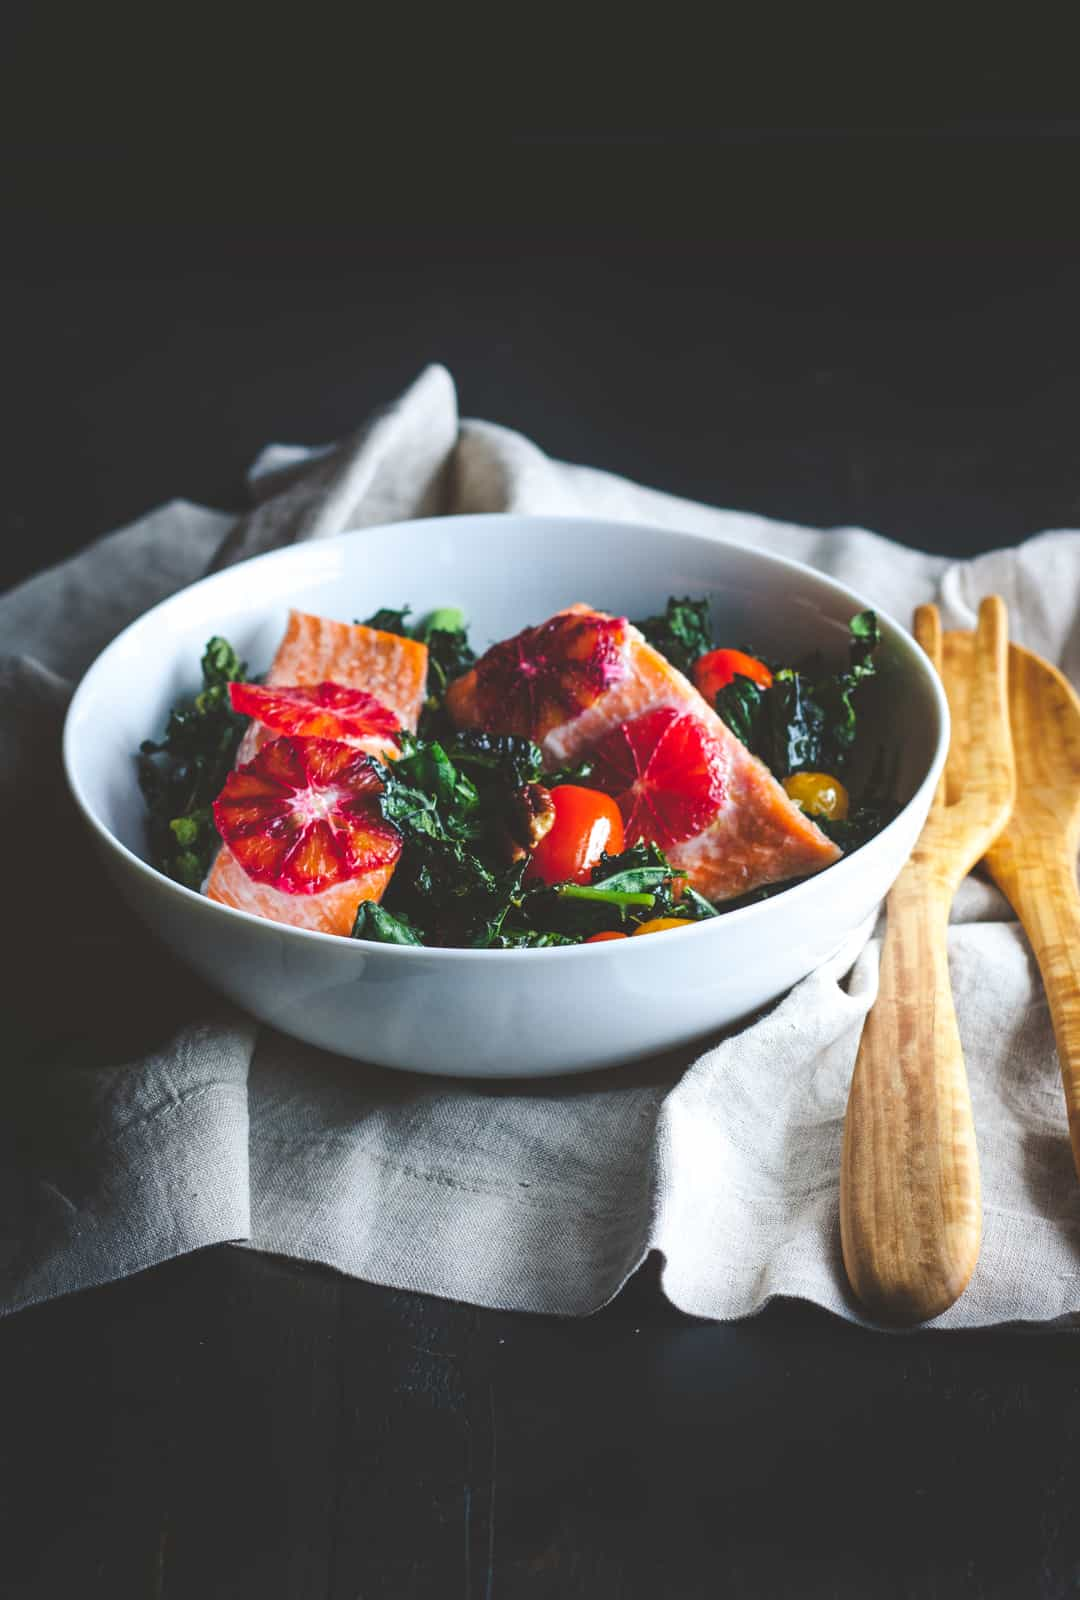 One pan salmon detox salad recipe - salmon and kale salad - whole30 salmon sheetpan supper recipe, one pan dinner